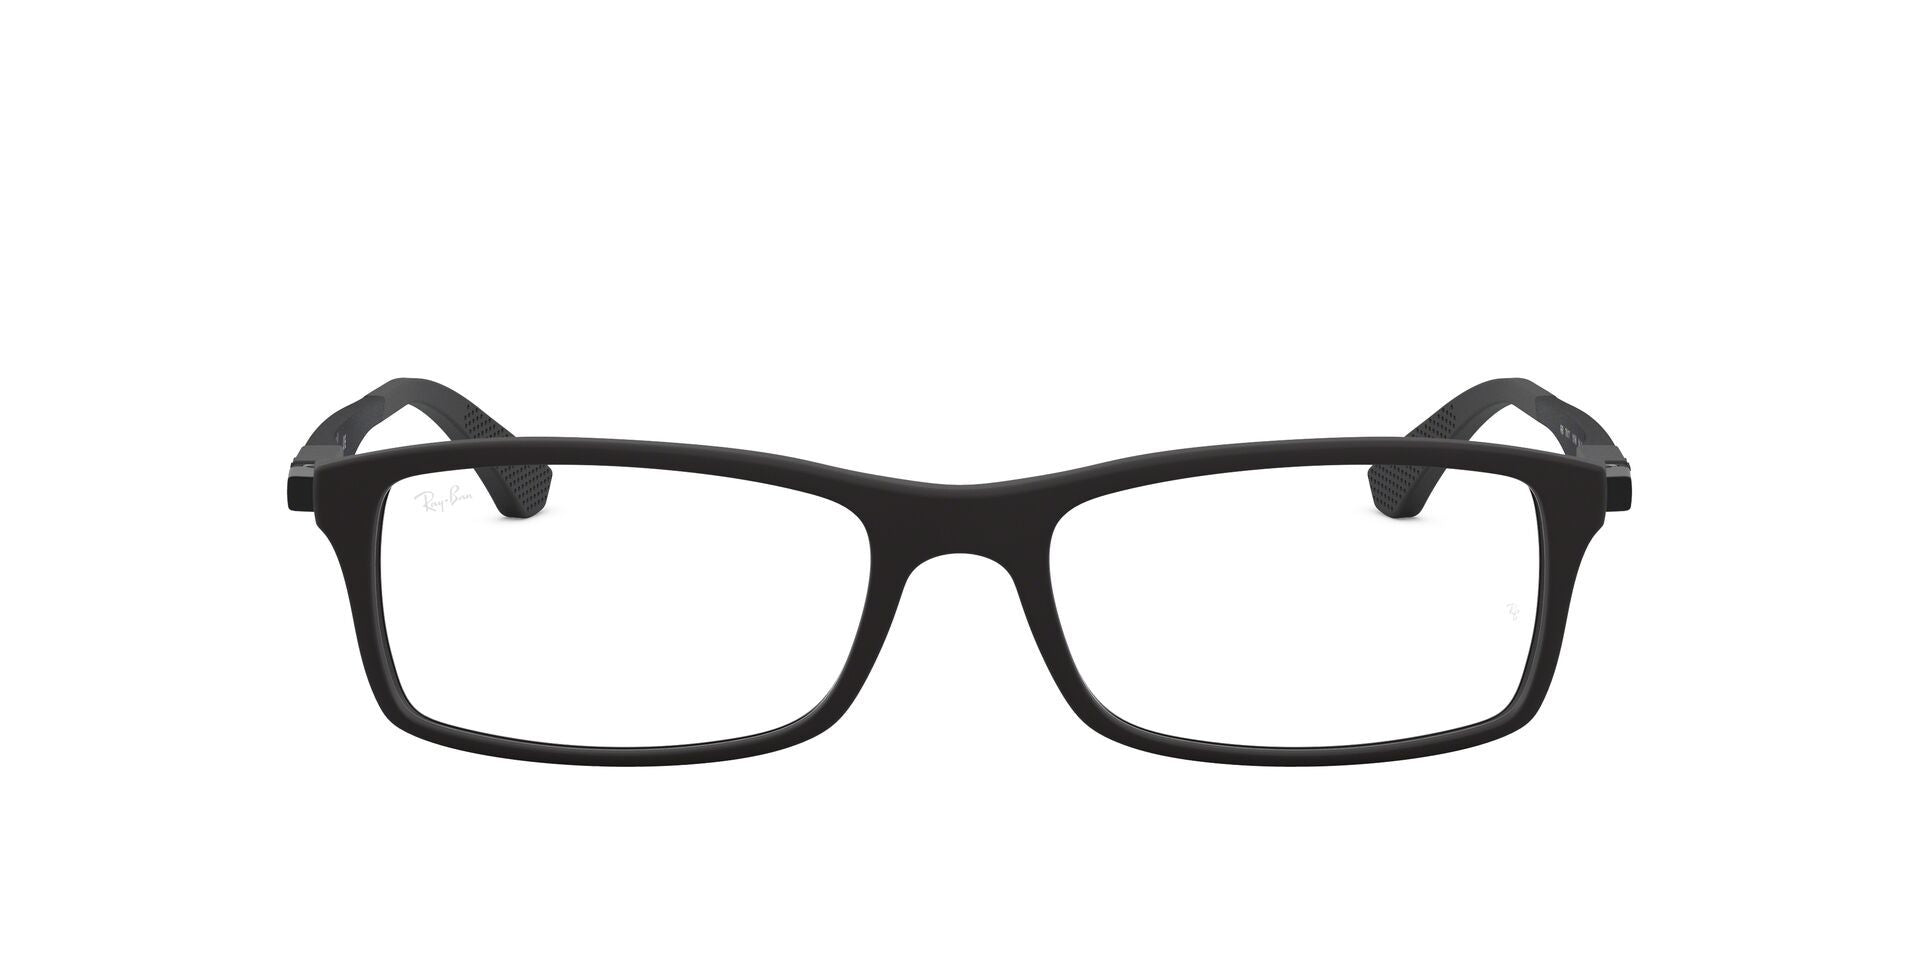 Ray Ban Rx - RX7017 Black Rectangular Men Eyeglasses - 54mm-Eyeglasses-Designer Eyes